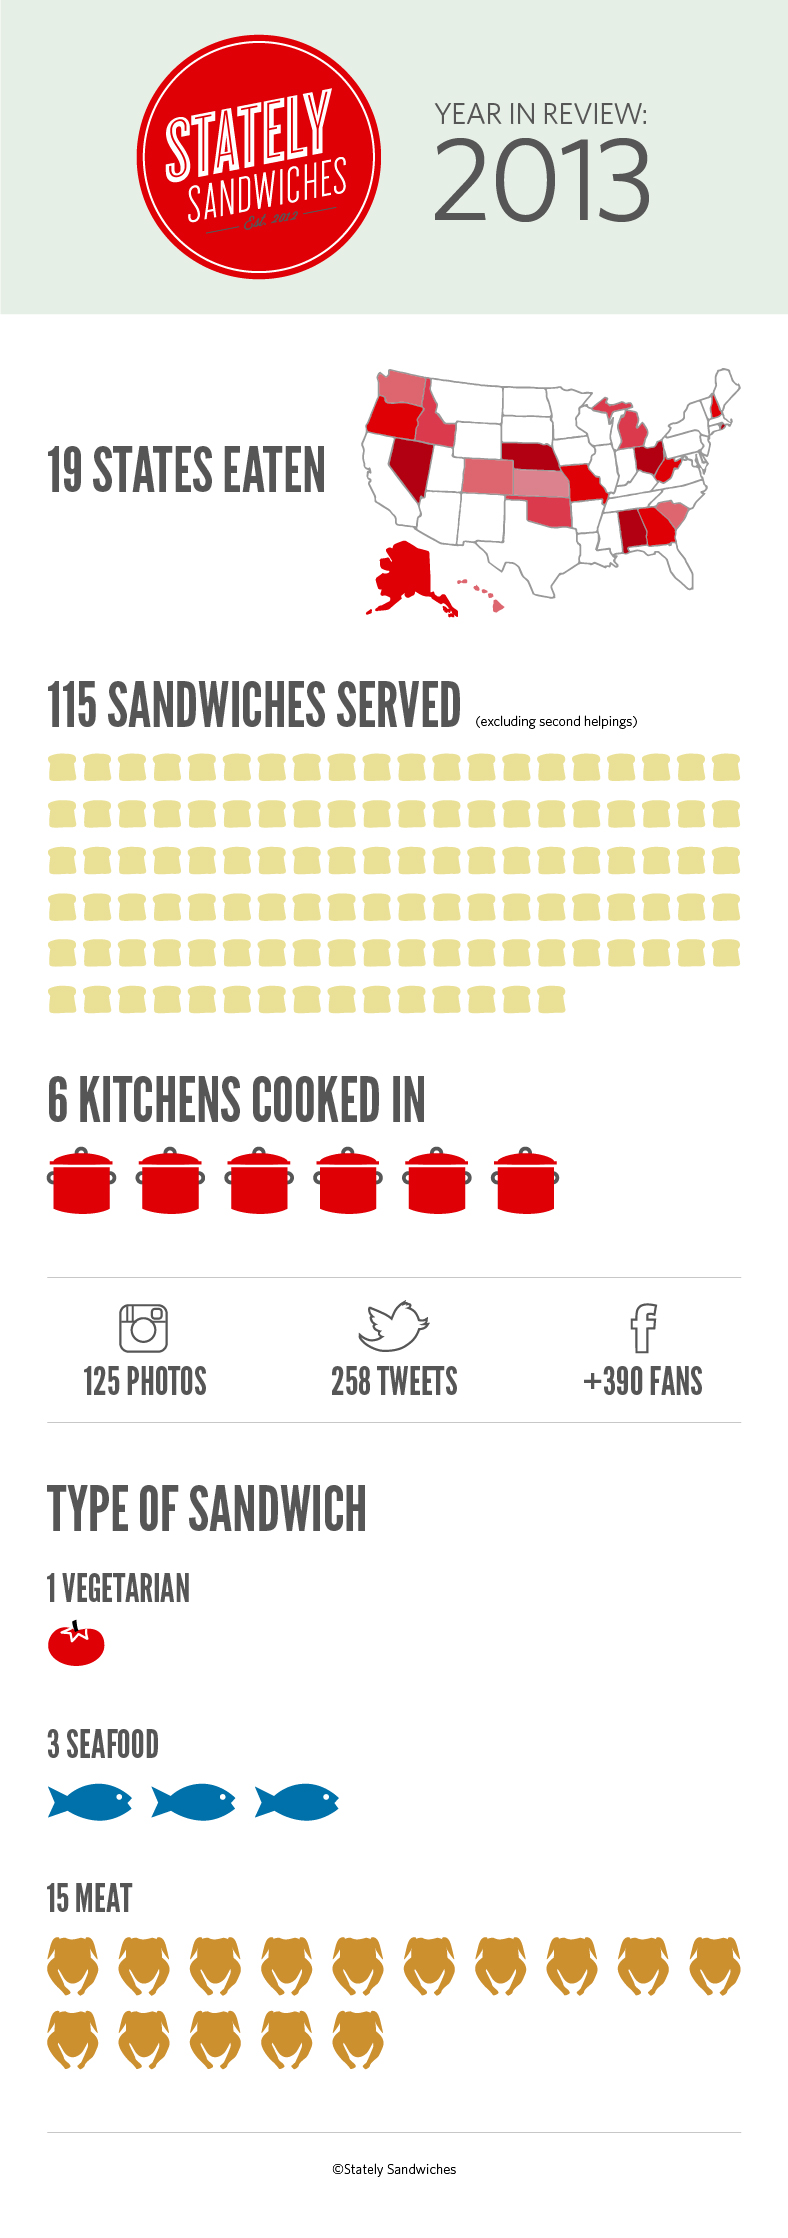 stately-sandwiches-year-in-review-2013.jpg